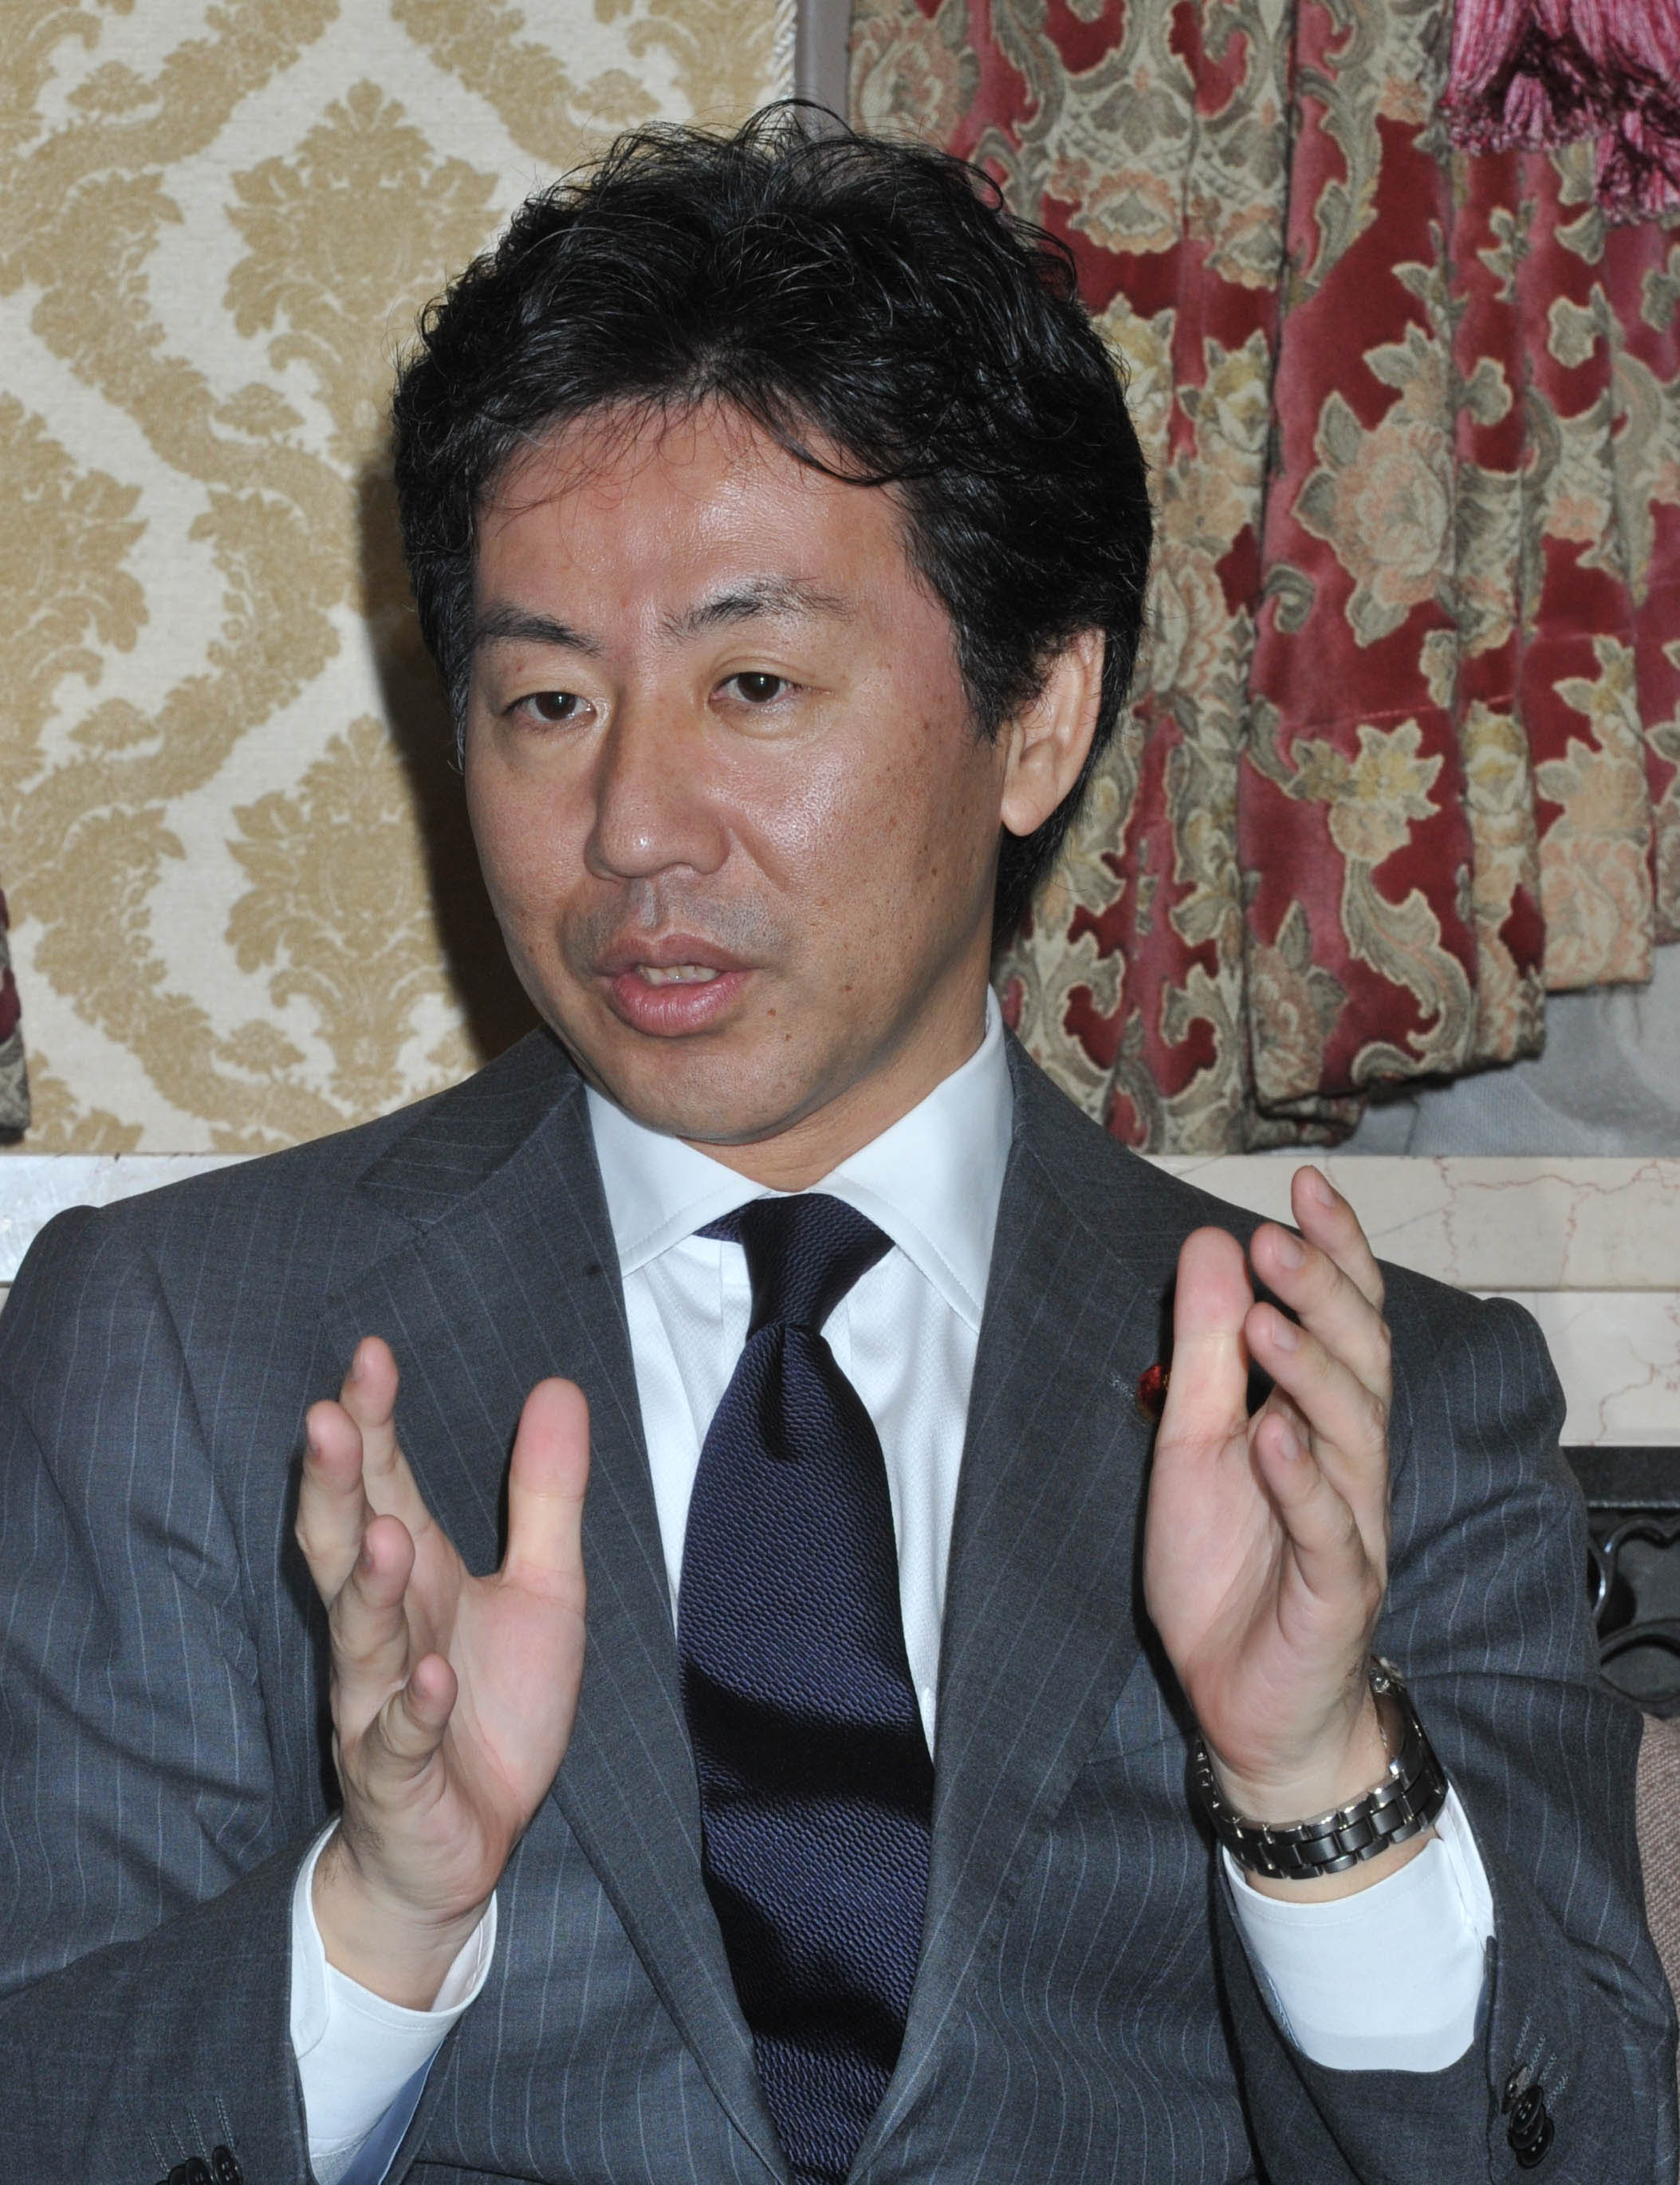 Azumi enters fray with tax-hike talk